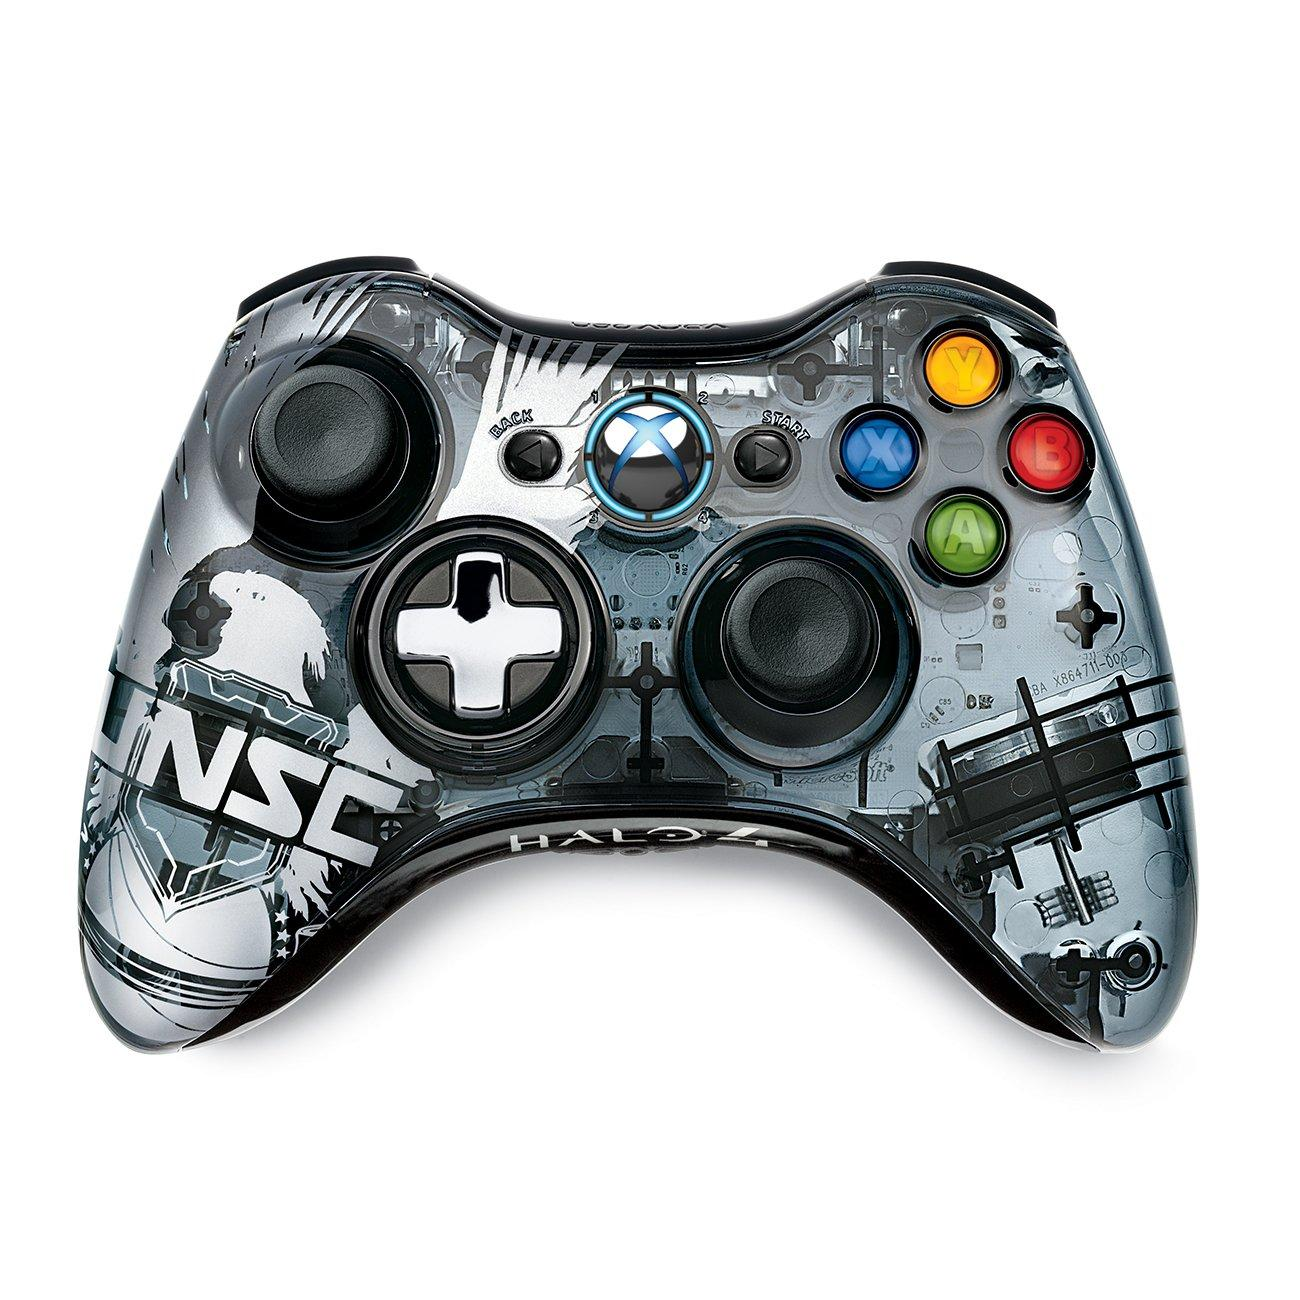 Microsoft Halo 4 Forerunner Limited Edition Wireless Controller grey